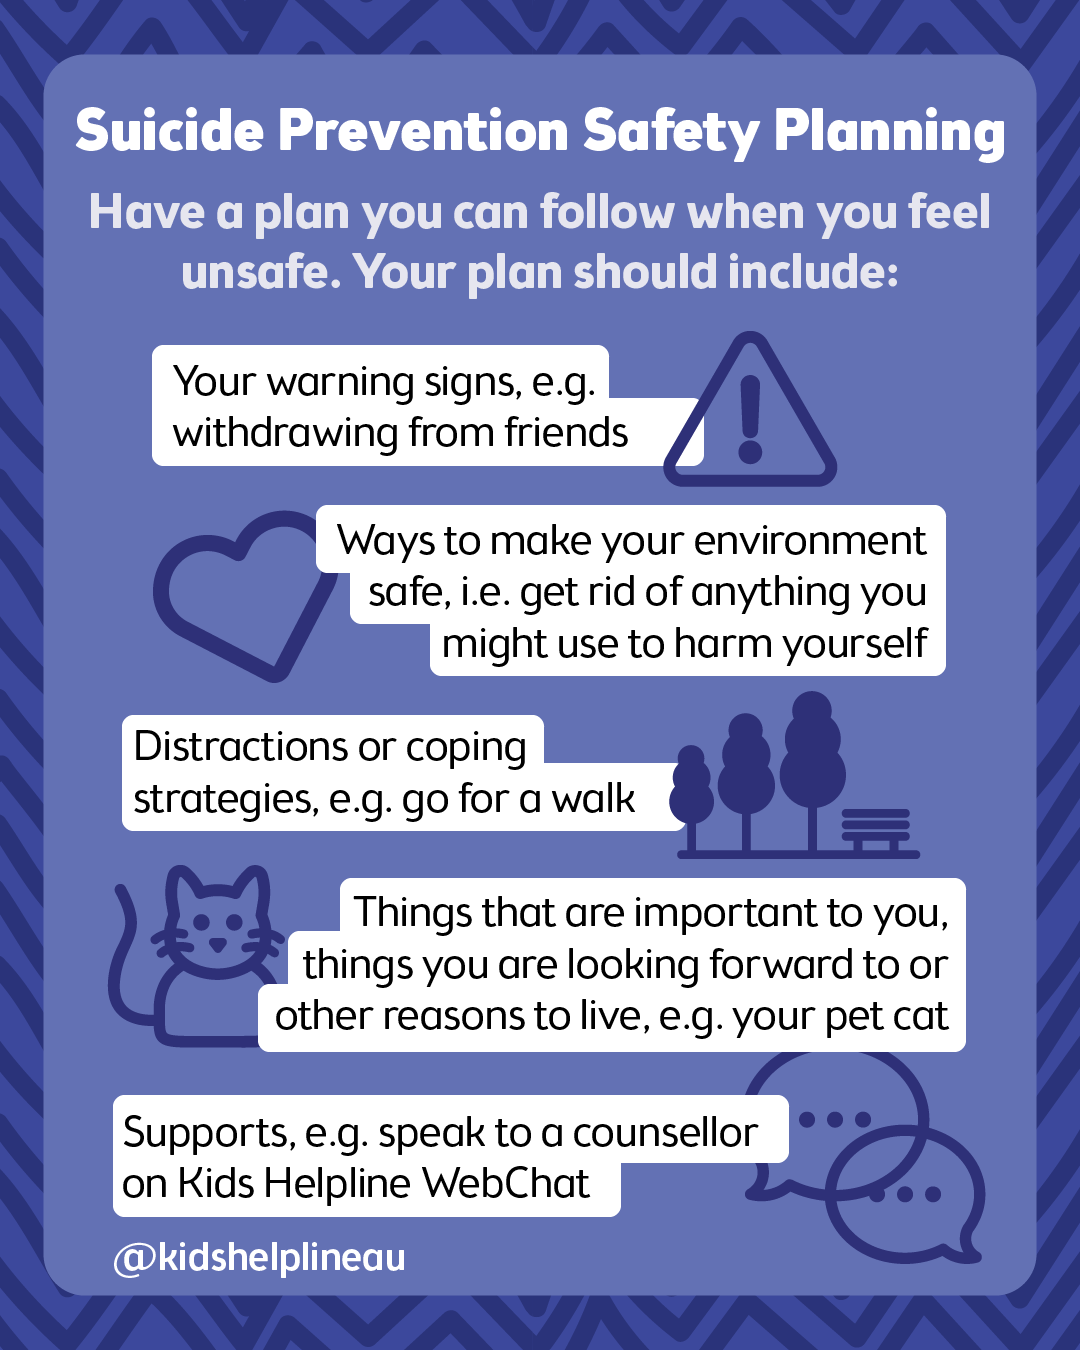 Suicide prevention safety planning